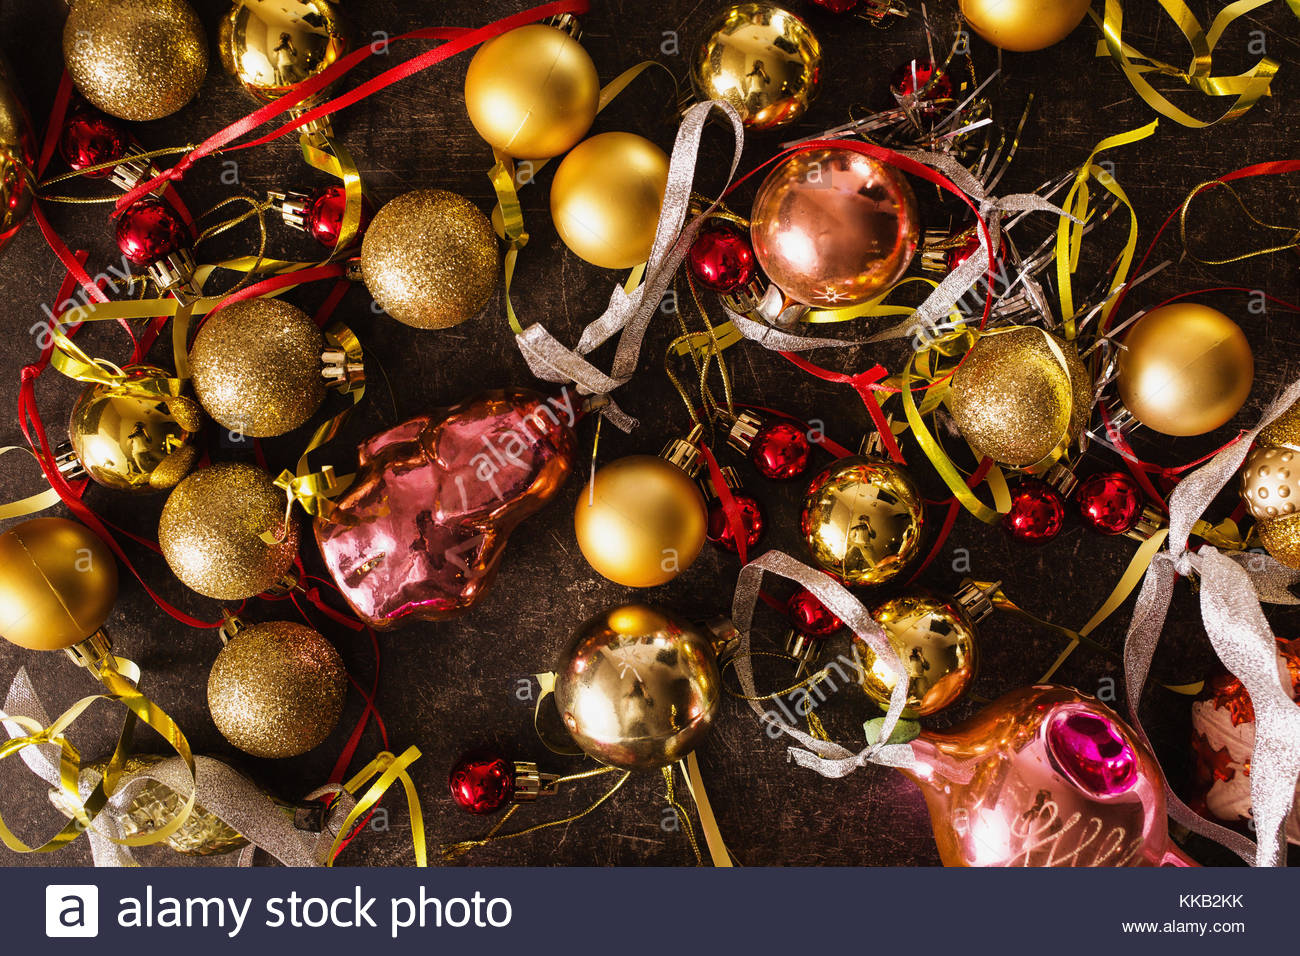 Colored Christmas toys on the table. Celebrate the New Year. - Stock Image